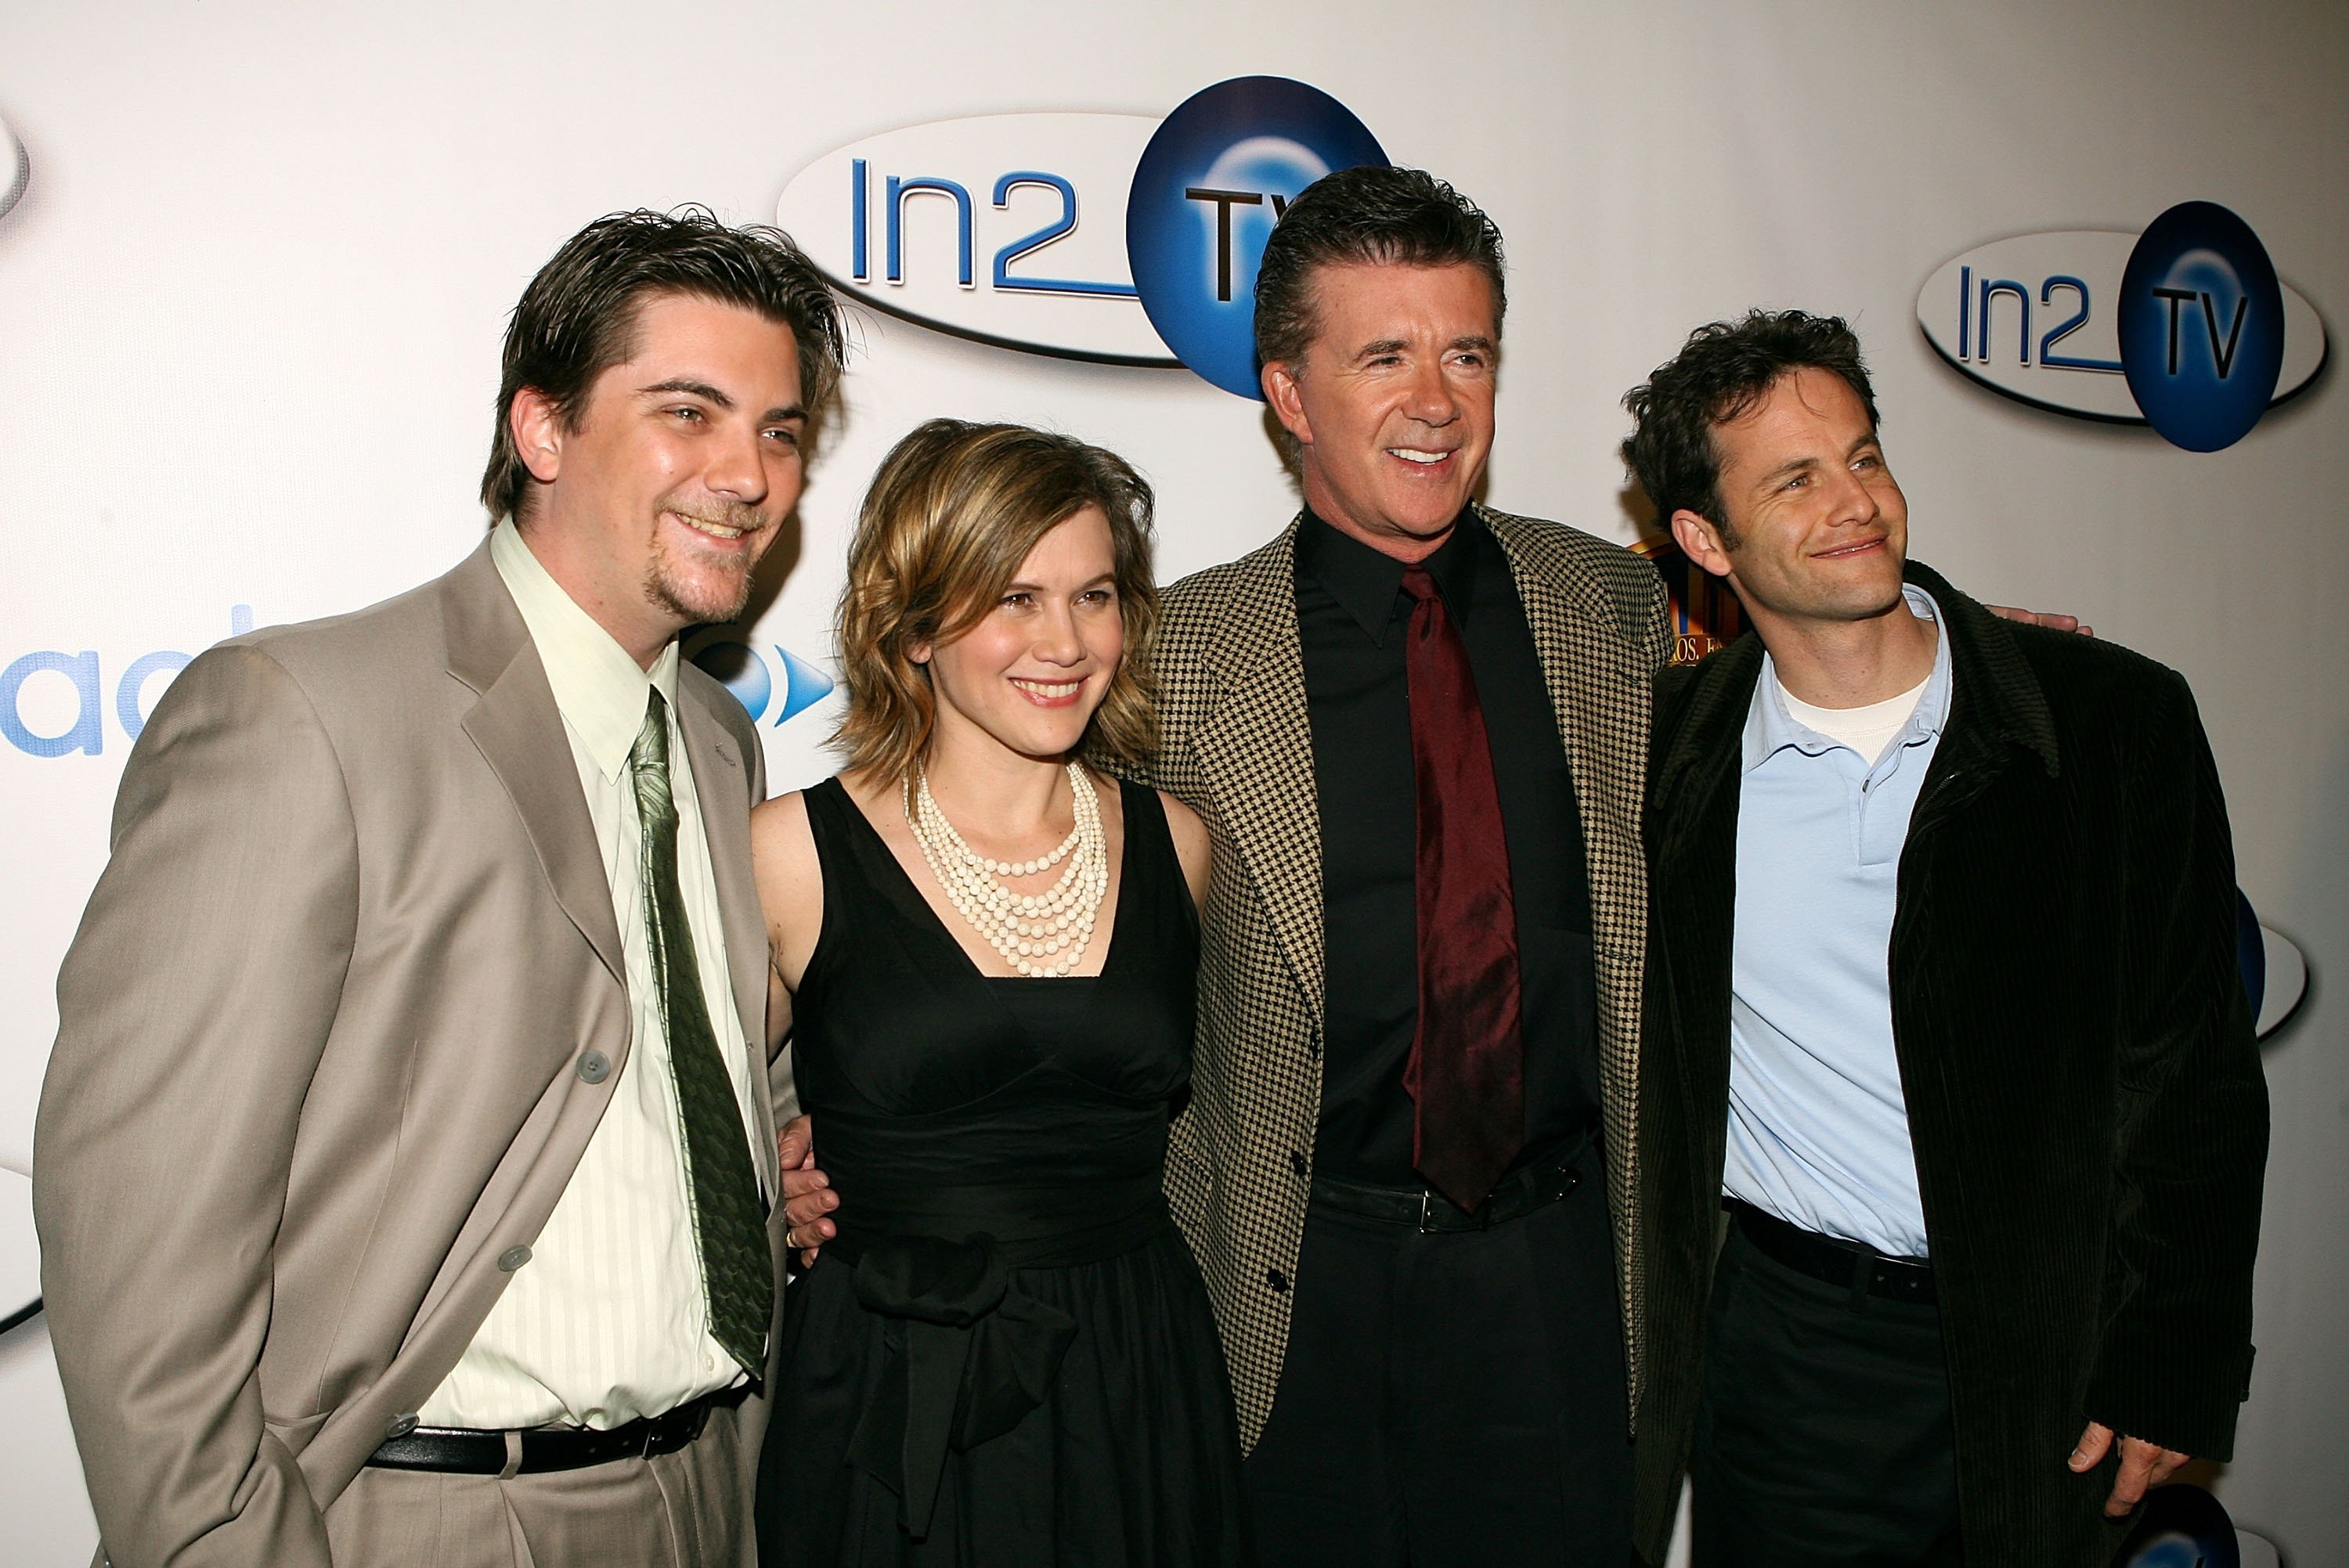 Jeremy Miller, Tracey Gold, Alan Thicke and Kirk Cameron at the Launch of In2TV at the Museum of TV & Radio on March 15, 2006 | Photo: GettyImages